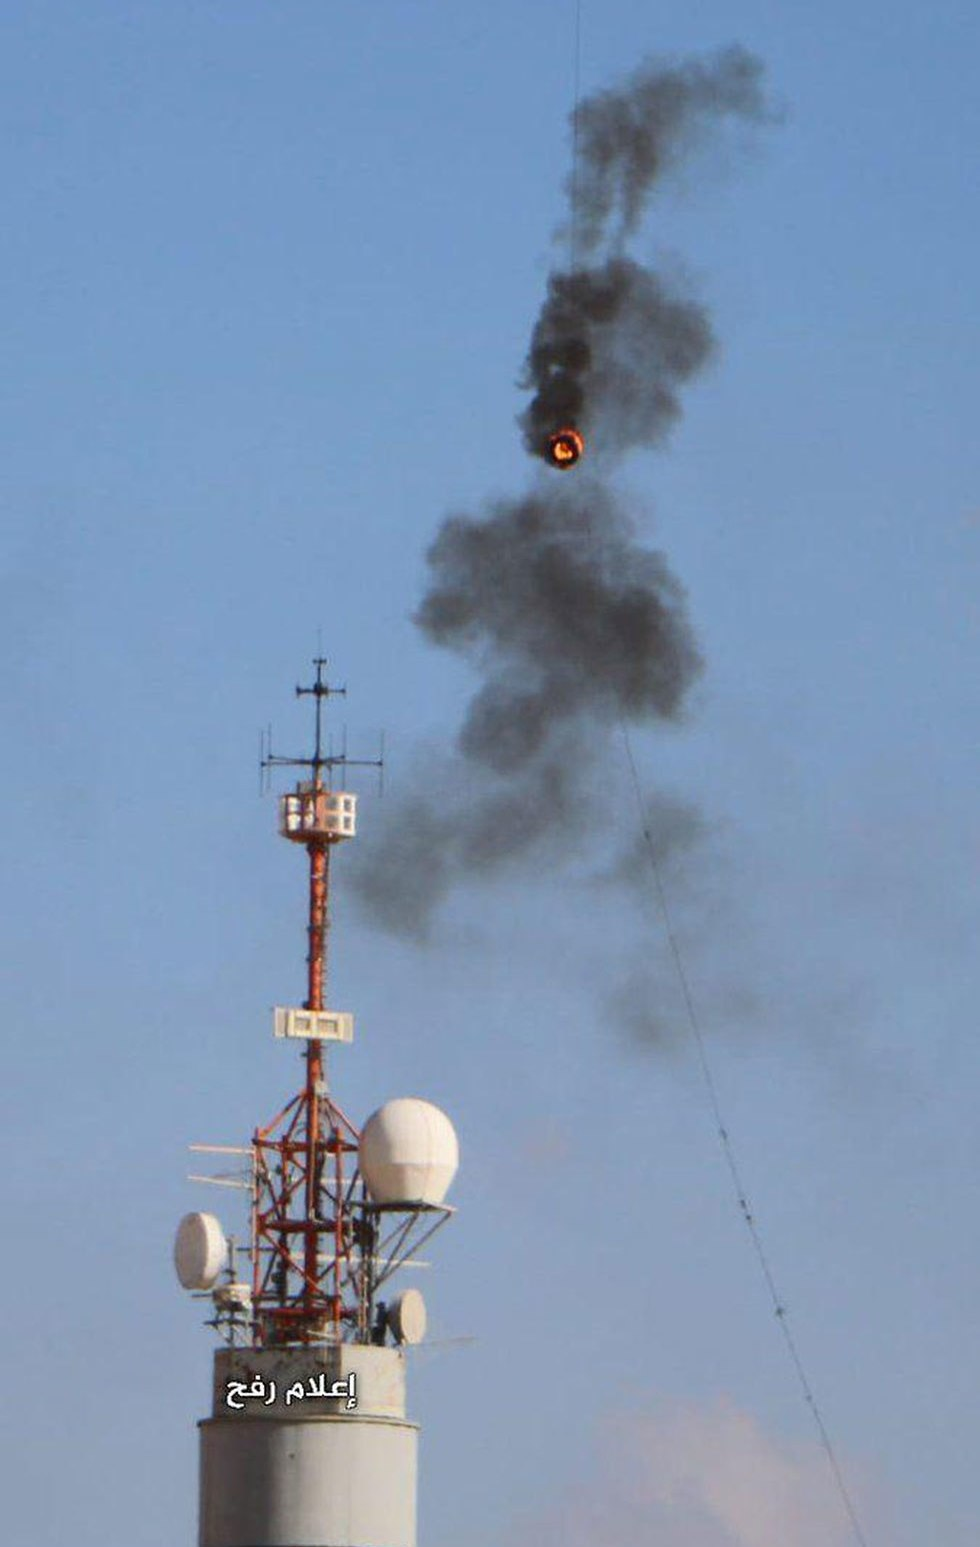 Fire breaks near communication tower amid incendiary kite